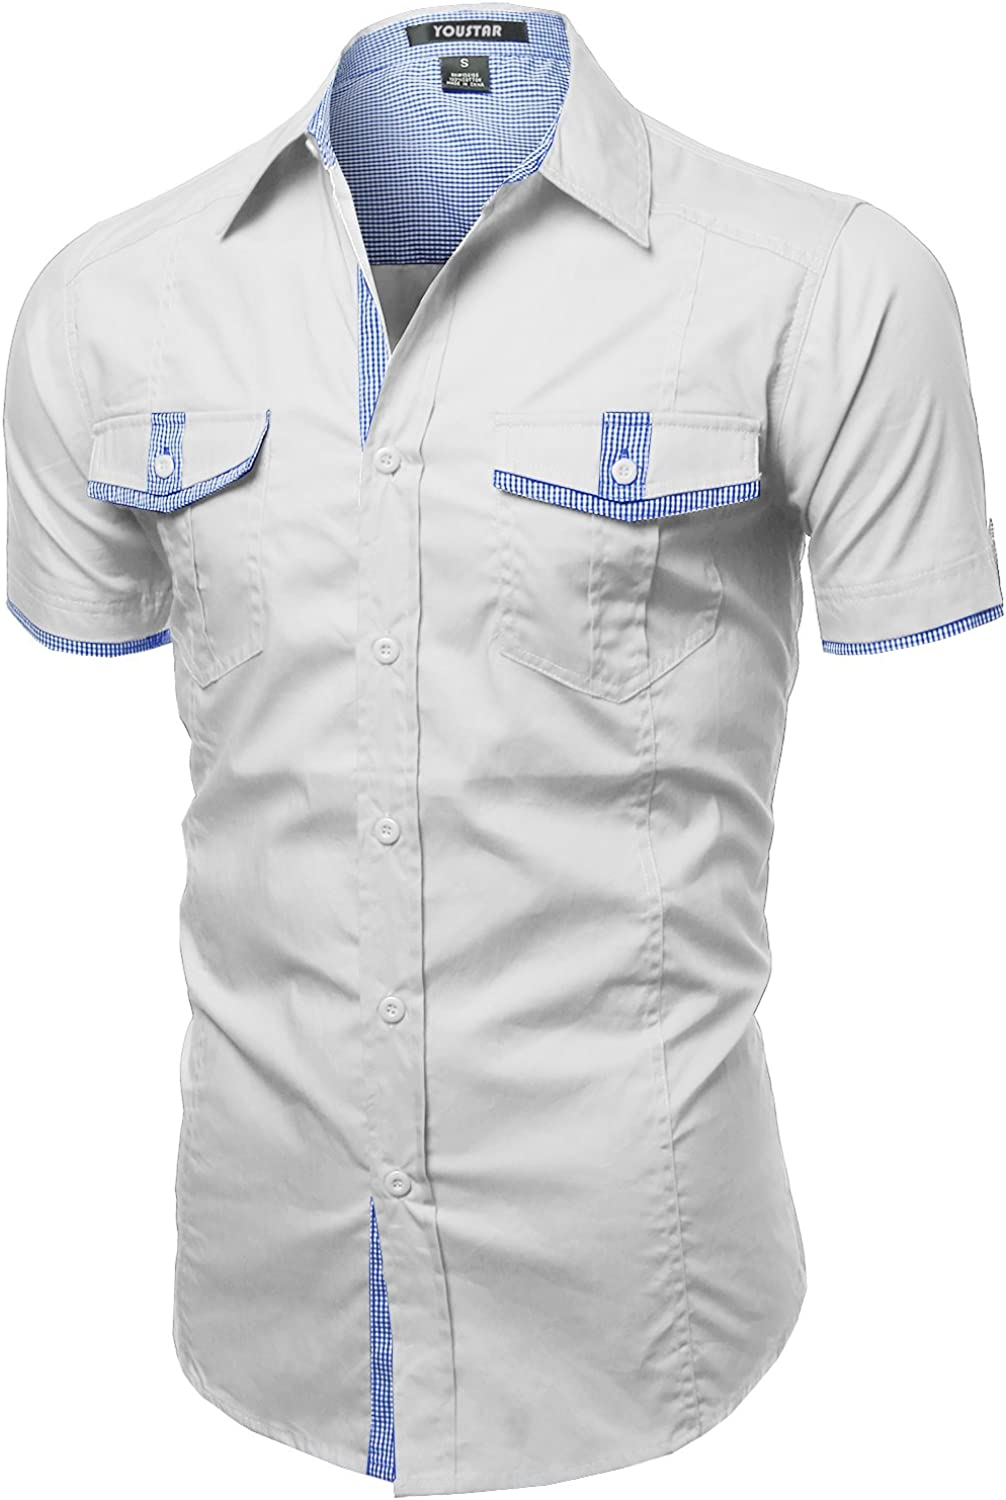 Youstar Men's Directly managed store Max 88% OFF Short Sleeve Shirts Down Button